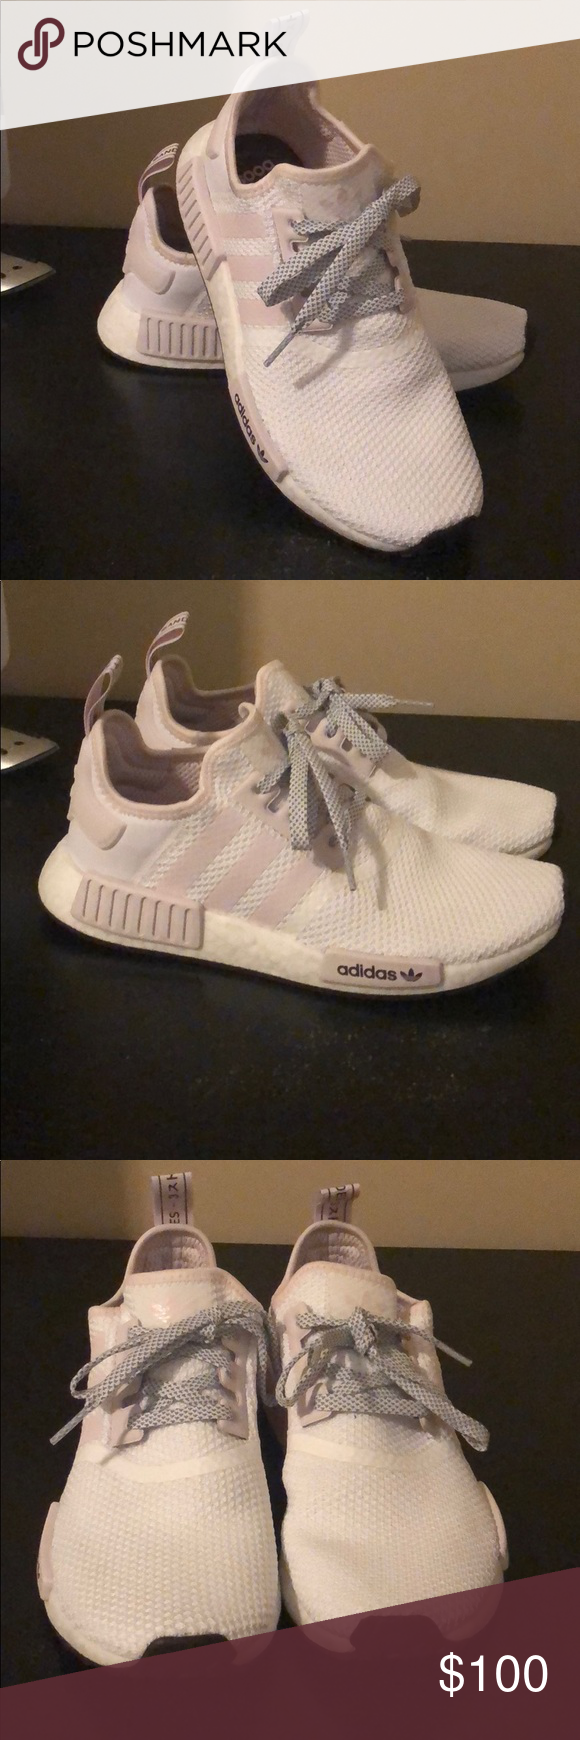 29bbc6ef4b2dc Adidas NMD R1 Women s Women s size 8.5 Cloud White Orchid Tint Night Red  Excellent Condition Worn twice adidas Shoes Sneakers